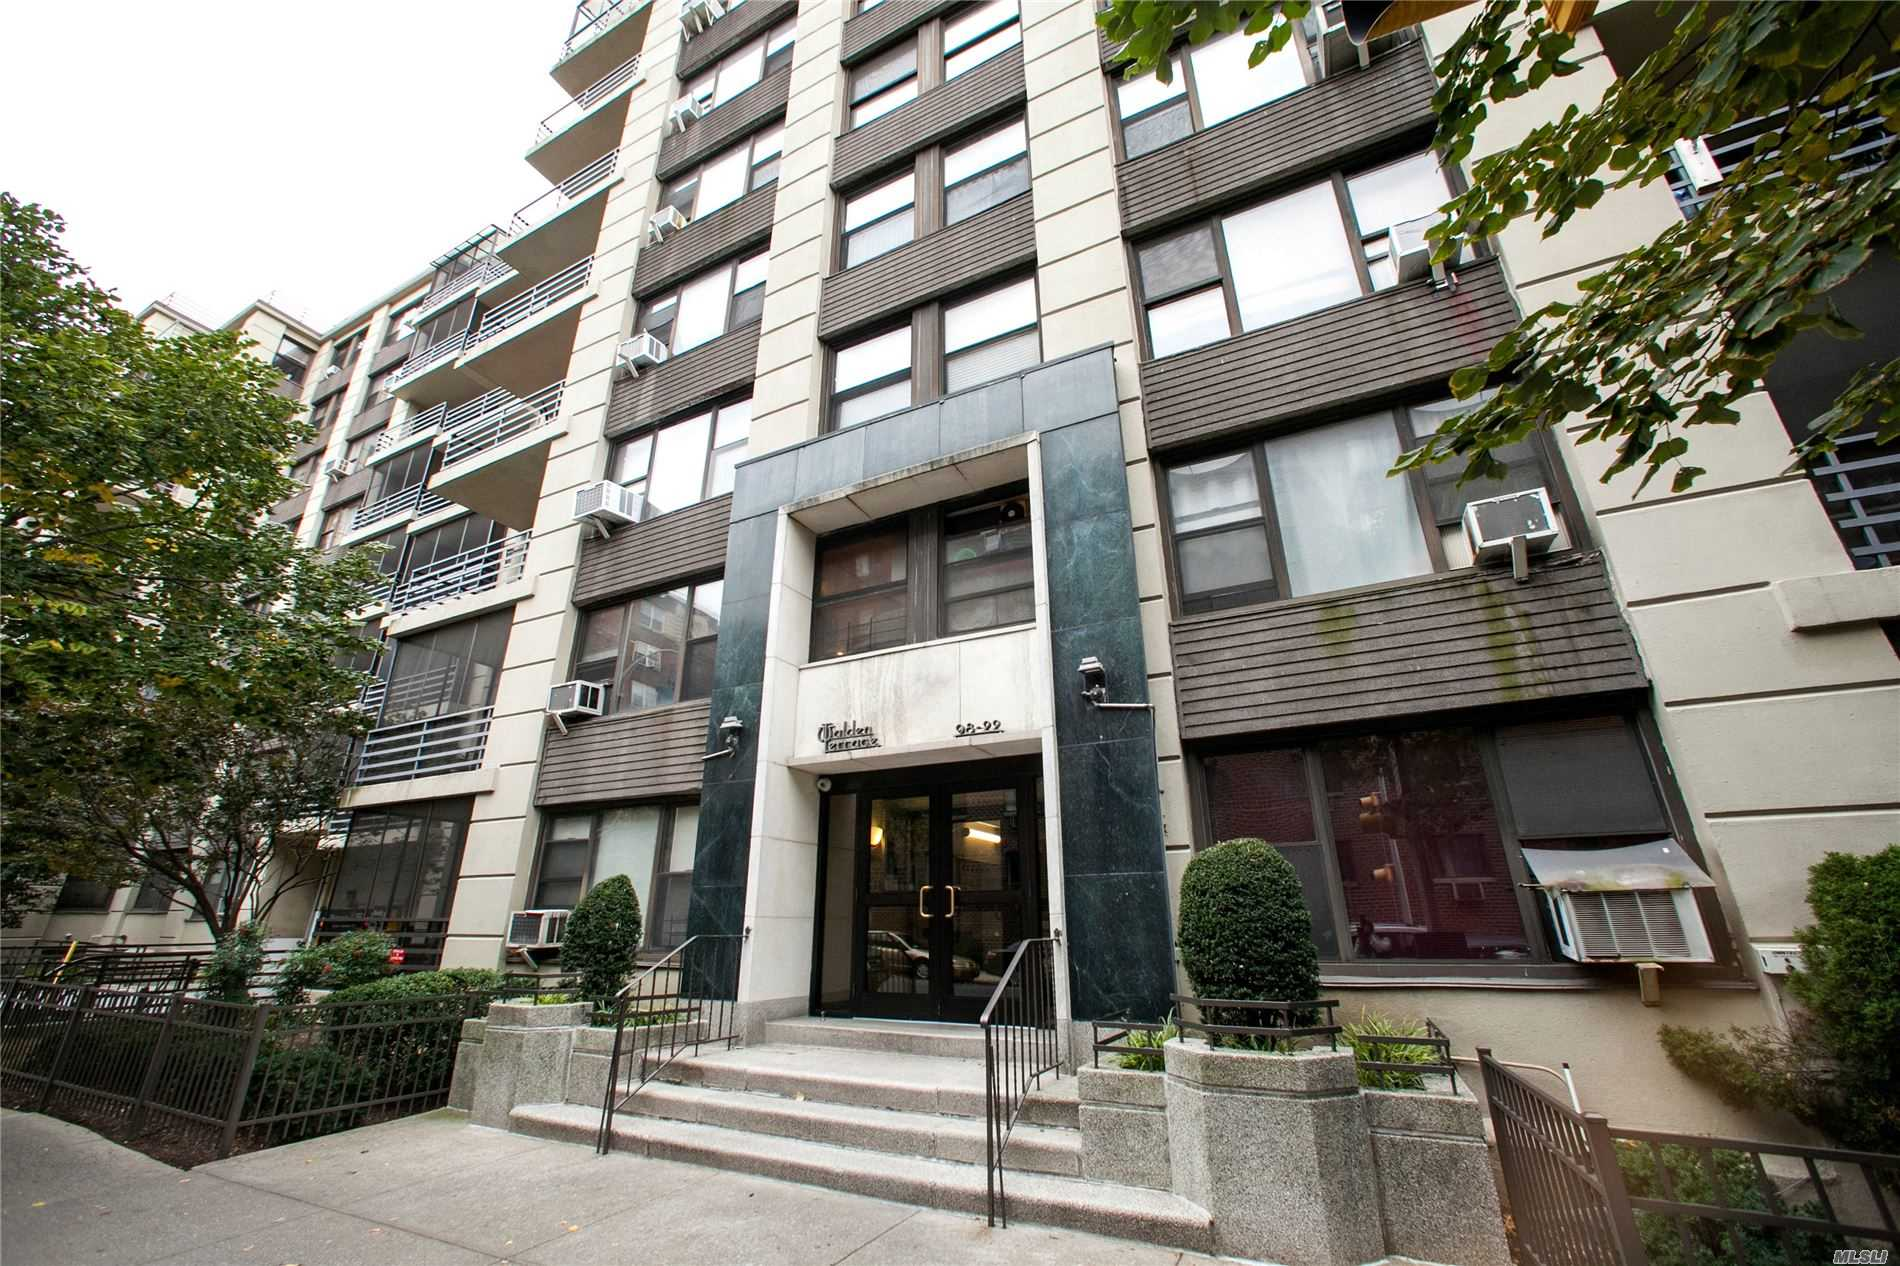 Beautiful Fully Renovated 2 Bedroom Apartment For Sale In Walden Terrace. The Unit Features A Spacious Sunken Living Room With Parquet Floors, Dining Area, Separate Full Kitchen With Window, Large Bedrooms, 2 Full Bathrooms with Stand-Up Showers, Walk-in Closet and a Private Terrace. All Utilities Are Included! Pet Friendly Elevator Building With On-Site Laundry. Convenient Location, Steps to Subway, Buses, Stores and Restaurants.